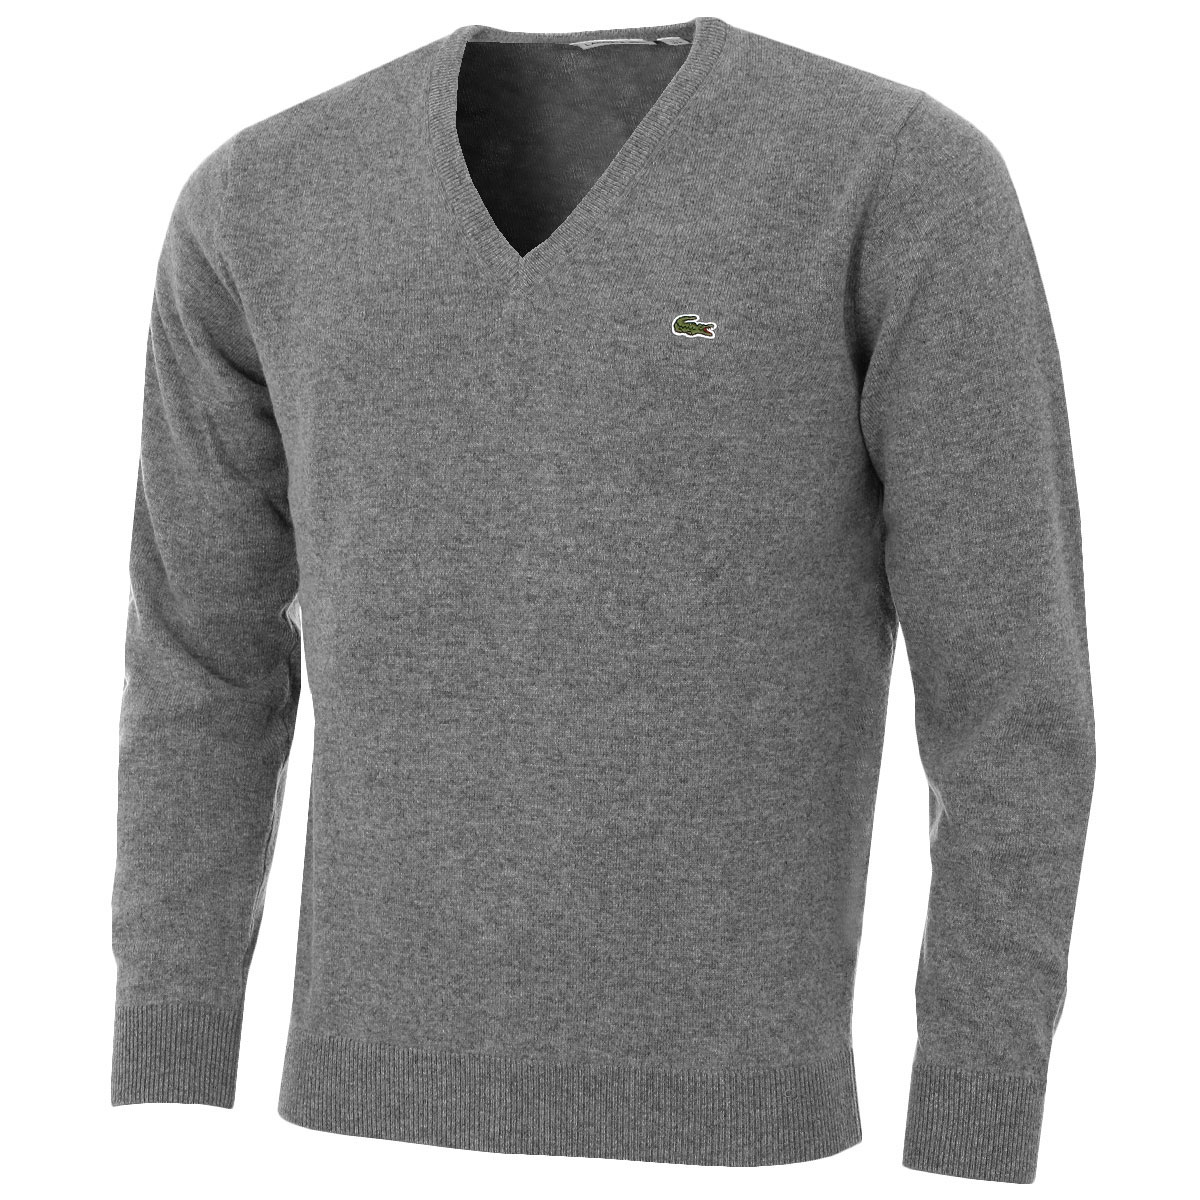 lacoste mens ah3003 wool v neck sweater pullover jersey vn jumper ebay. Black Bedroom Furniture Sets. Home Design Ideas